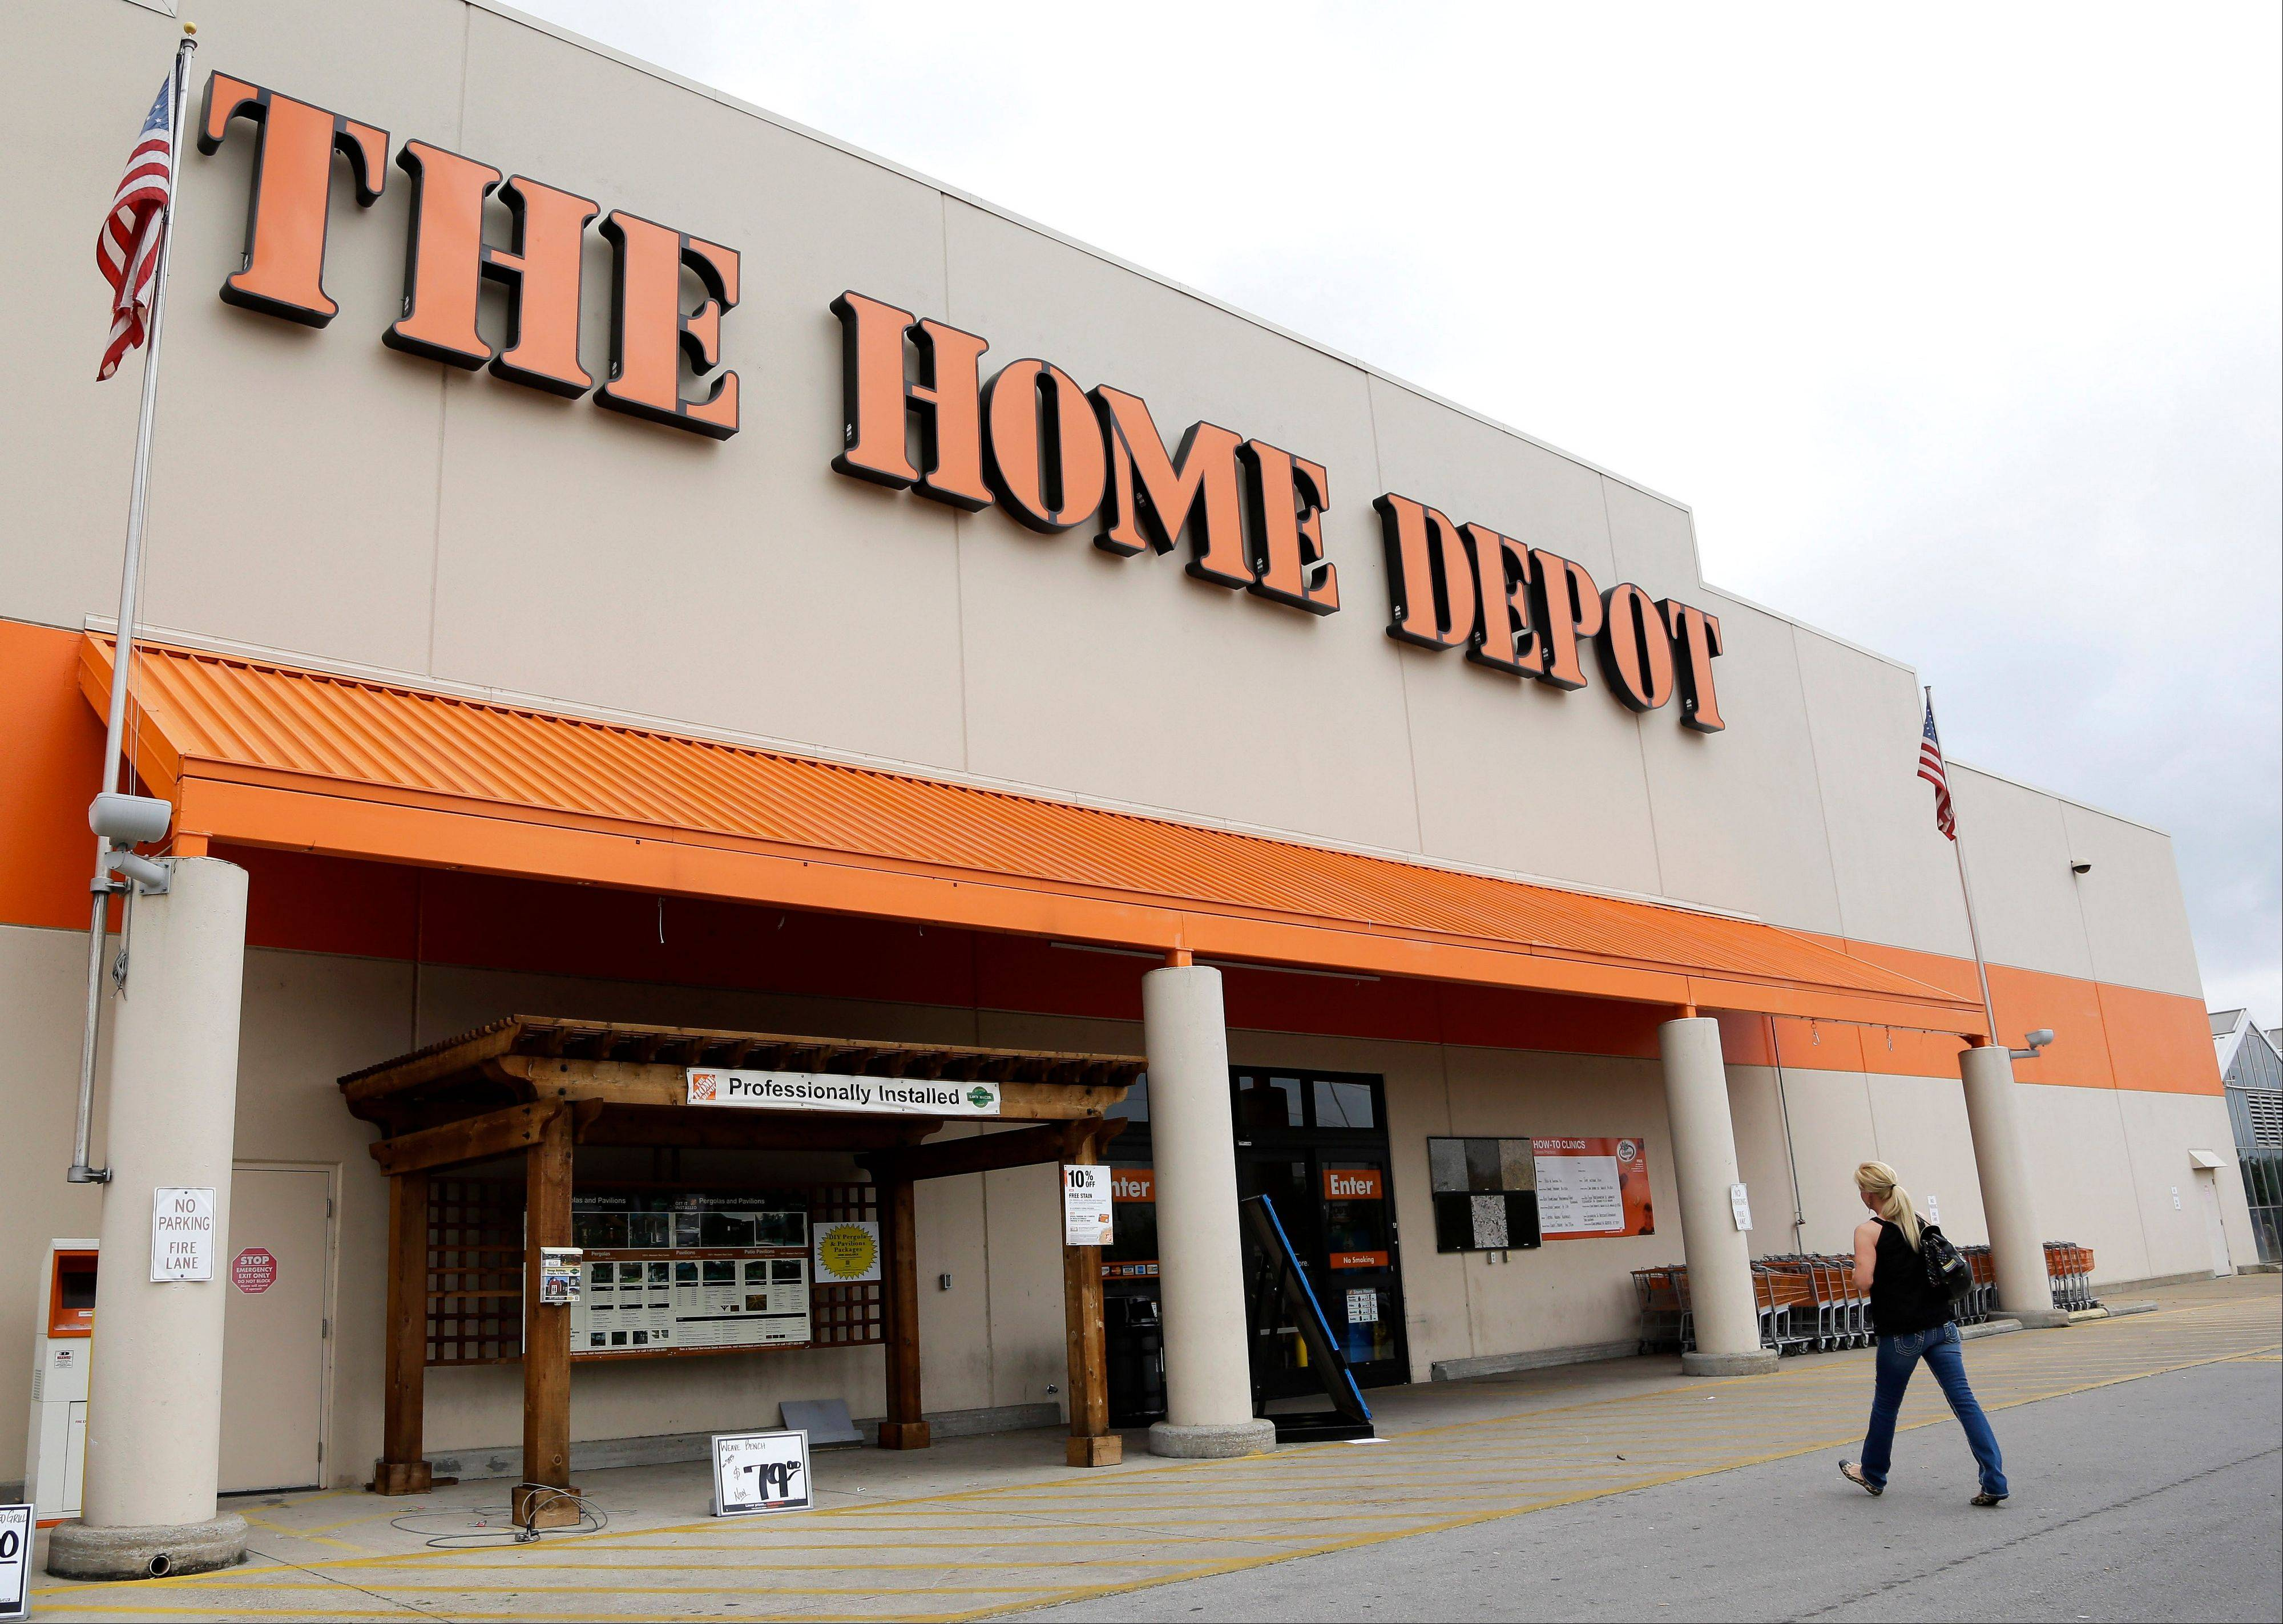 Home Depot Inc., the largest U.S. home improvement retailer, said Tuesday its fiscal fourth-quarter net income surged 32 percent, beating expectations, helped by strong U.S. sales and the cleanup related to Superstorm Sandy. This follows smaller rival Lowe's Cos. results Monday, which also beat expectations.